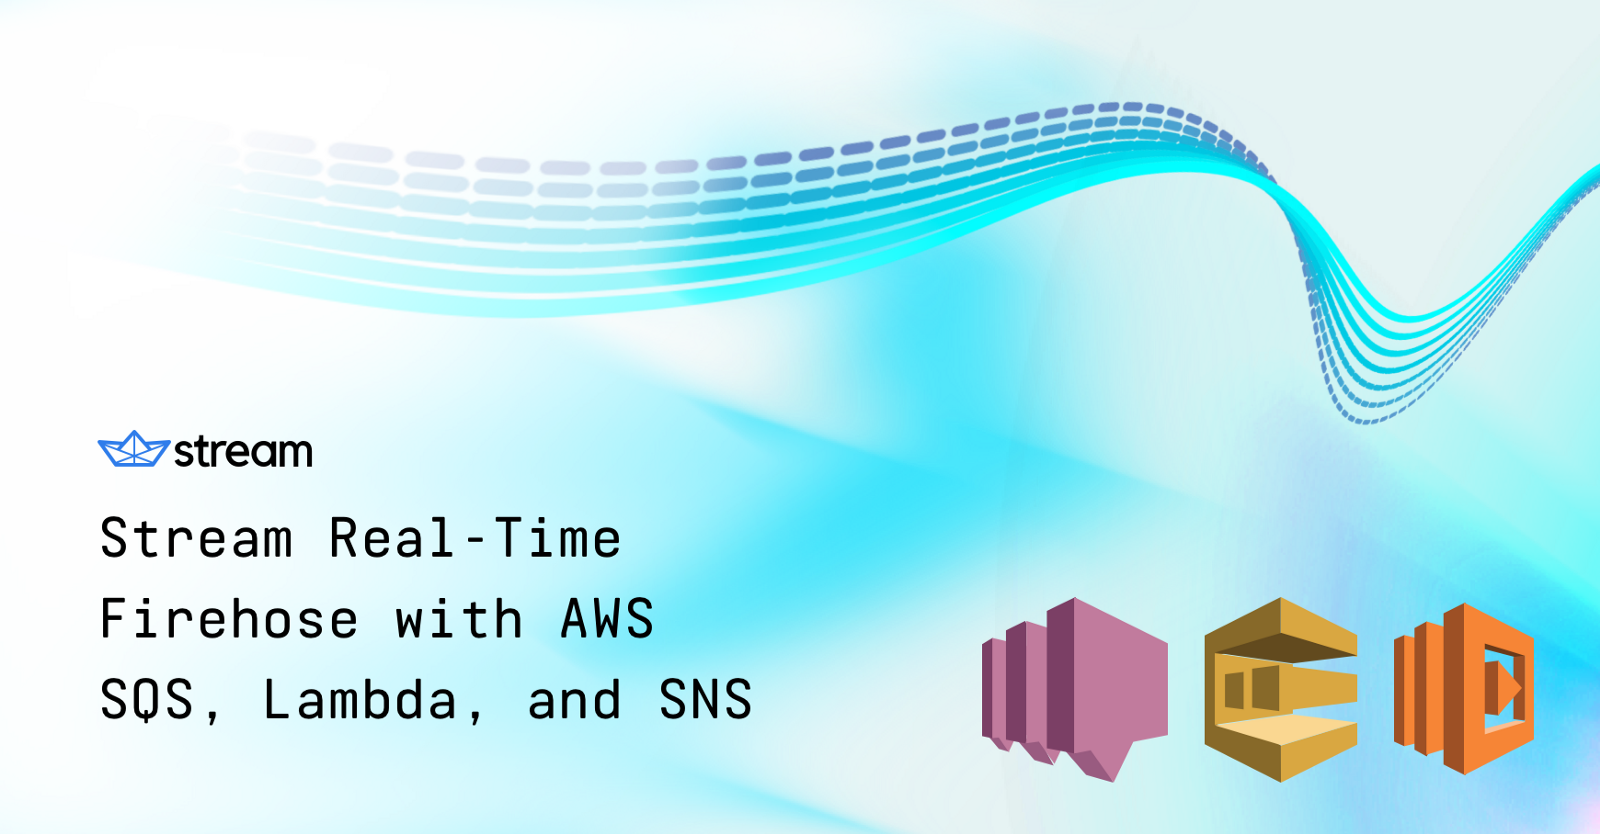 Using the Stream Real-Time Firehose with AWS SQS, Lambda, and SNS - By